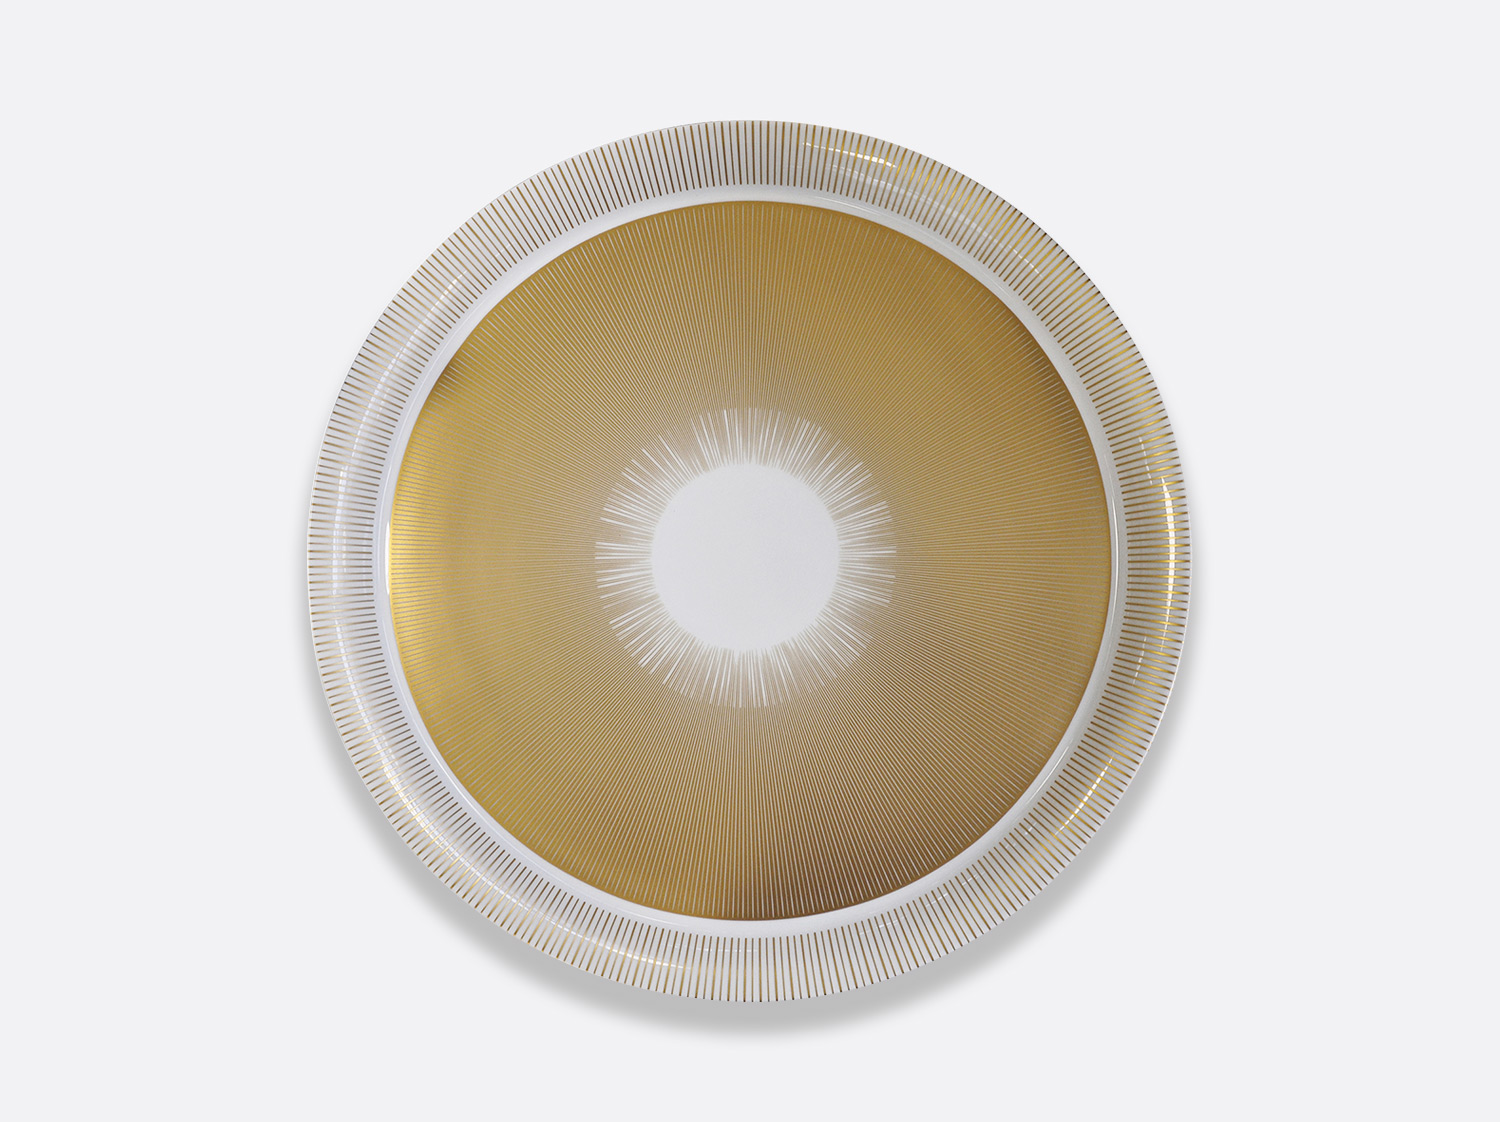 Plateau rond 48 cm en porcelaine de la collection Sol Bernardaud